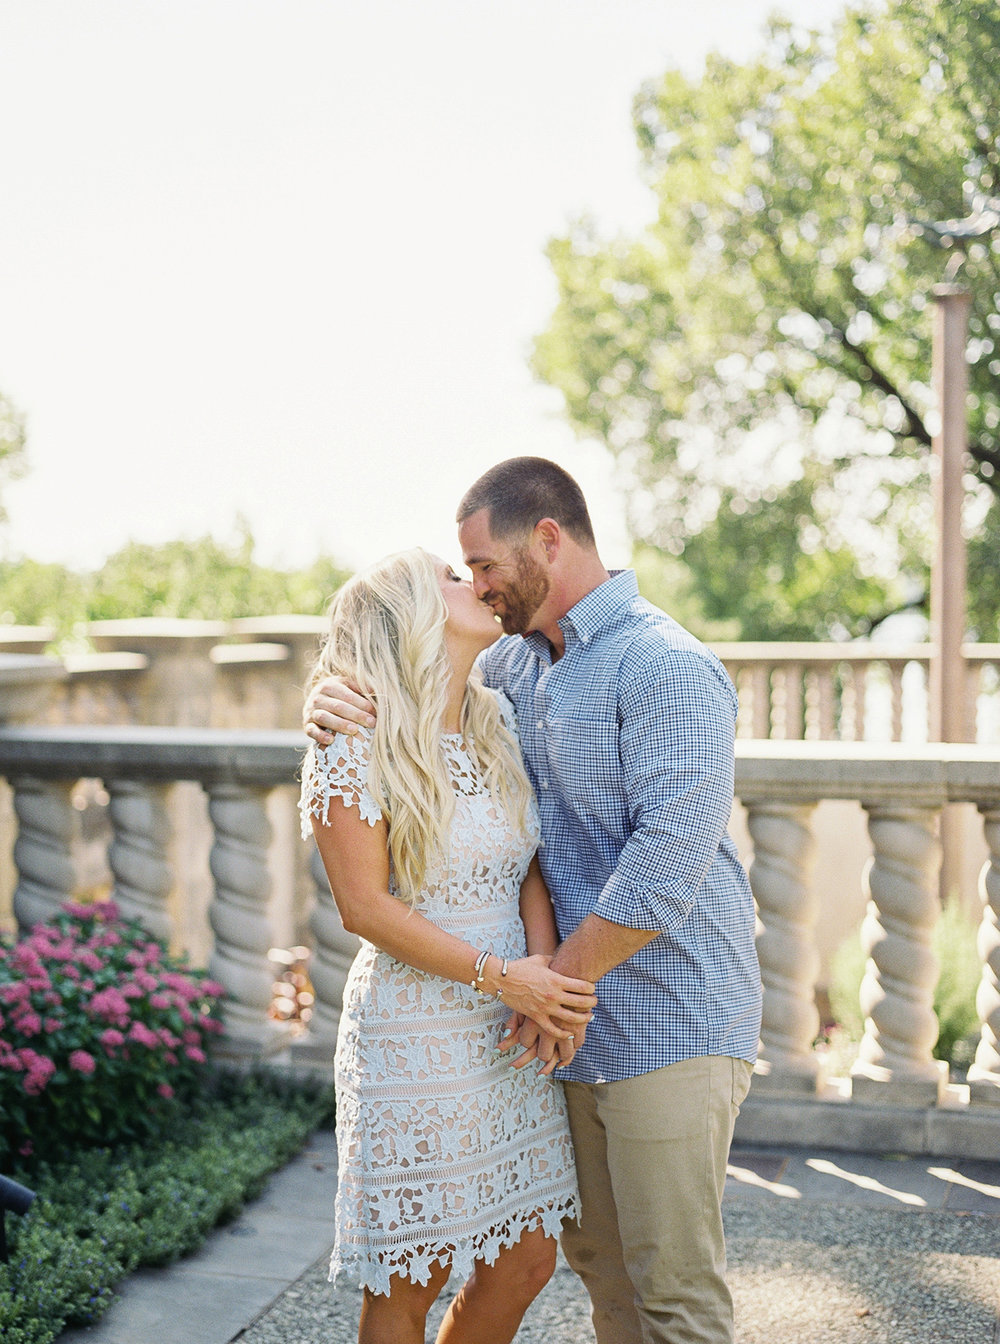 DFW Wedding Plannning | Allday Events | Dallas Arboretum Engagement Session | 00033.jpg